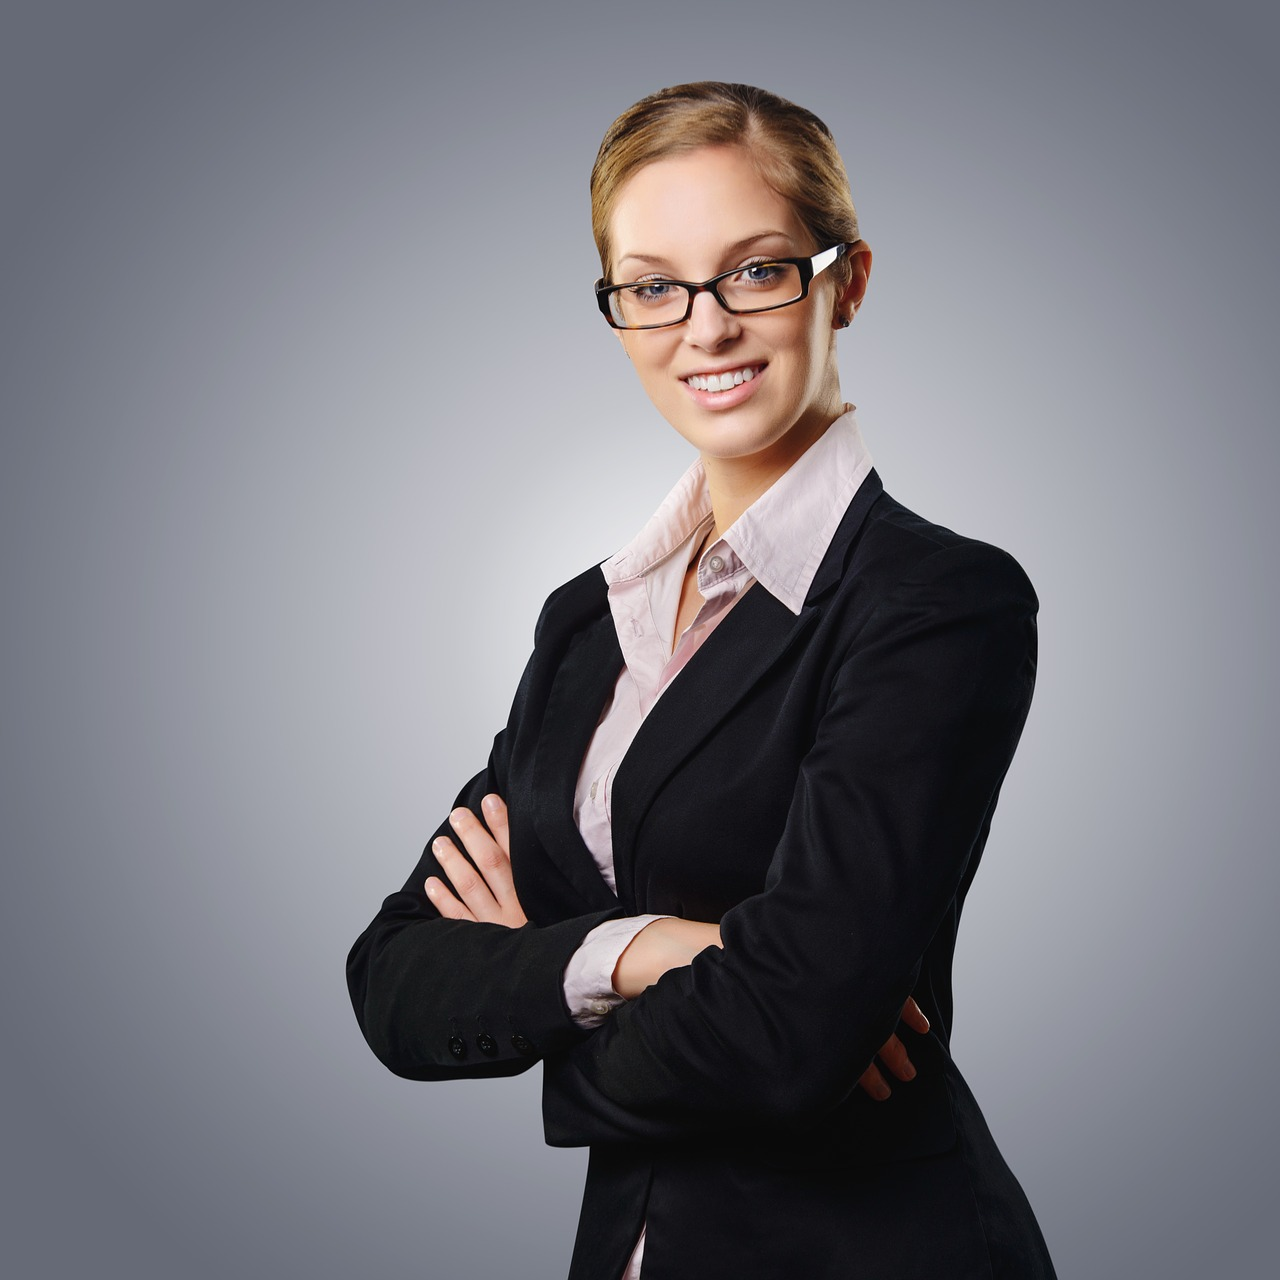 business-woman-2697954_1280